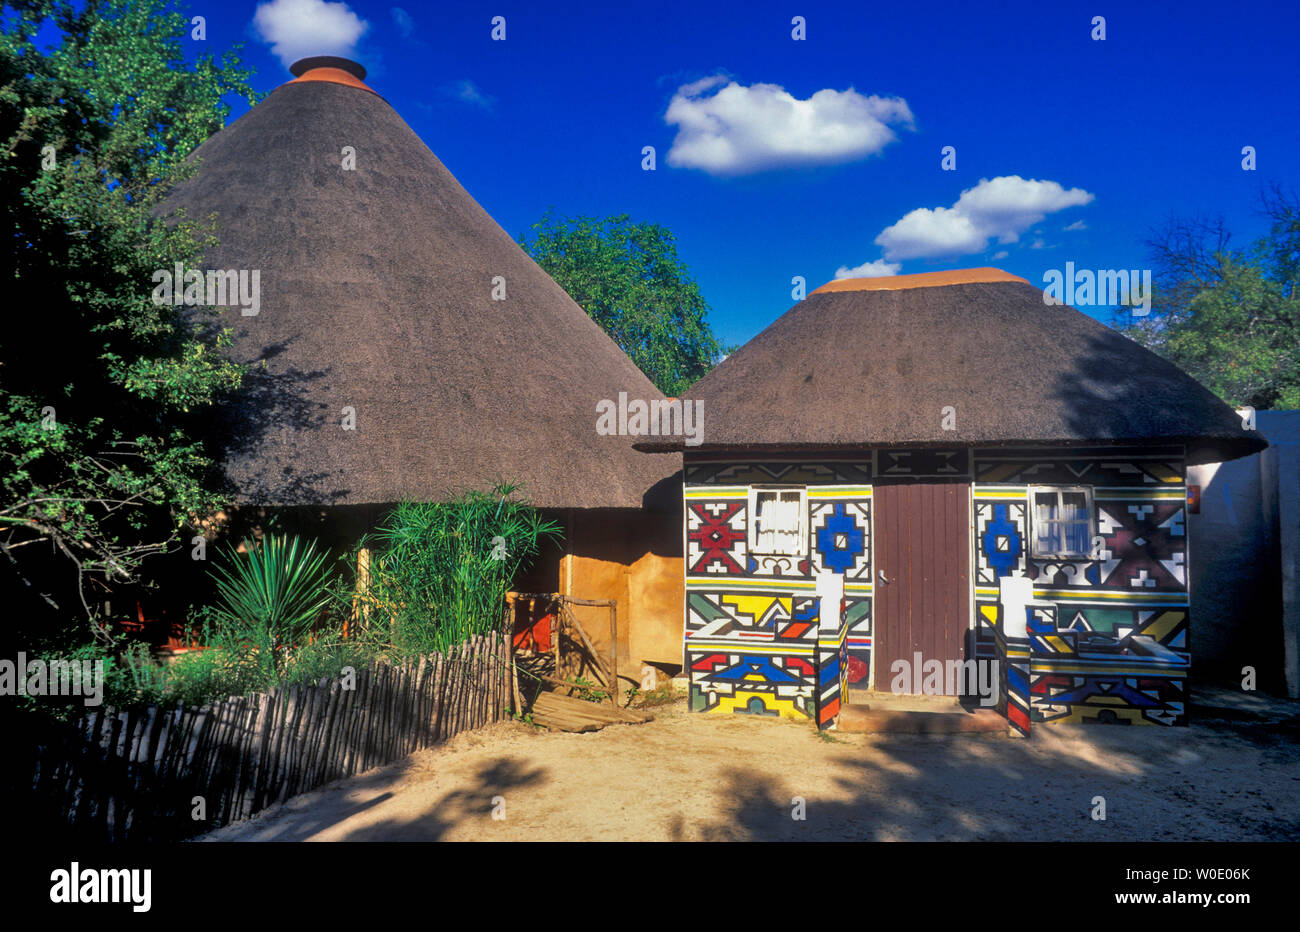 South Africa, Gauteng province, hut of the Ndebélé African ethnic group - Stock Image